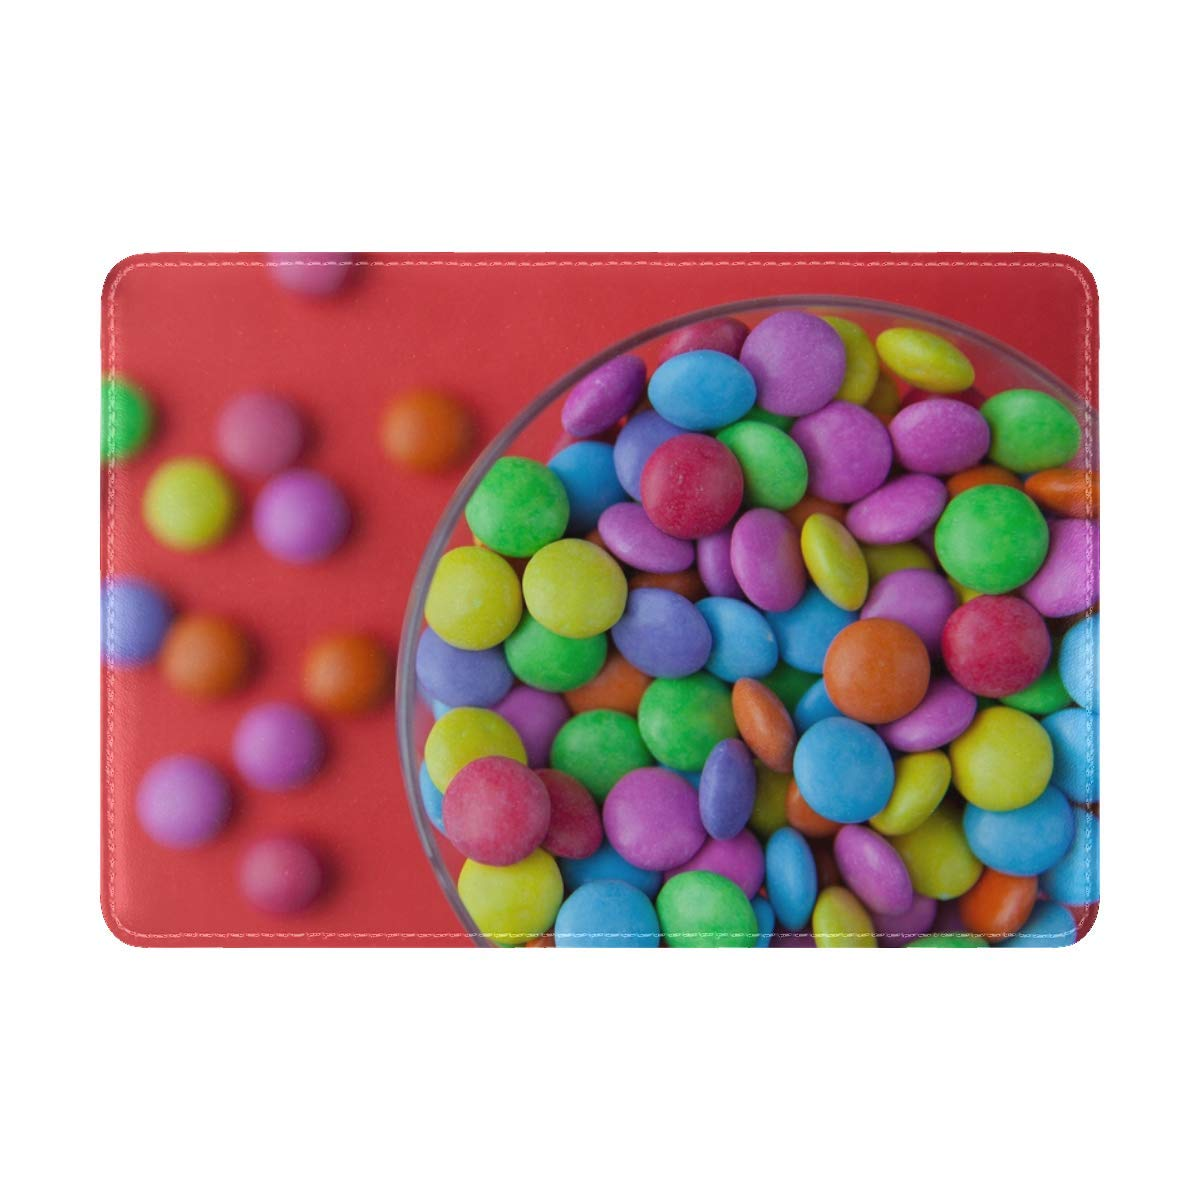 JiaoL Candy Colorful Bowl Leather Passport Holder Cover Case Travel One Pocket